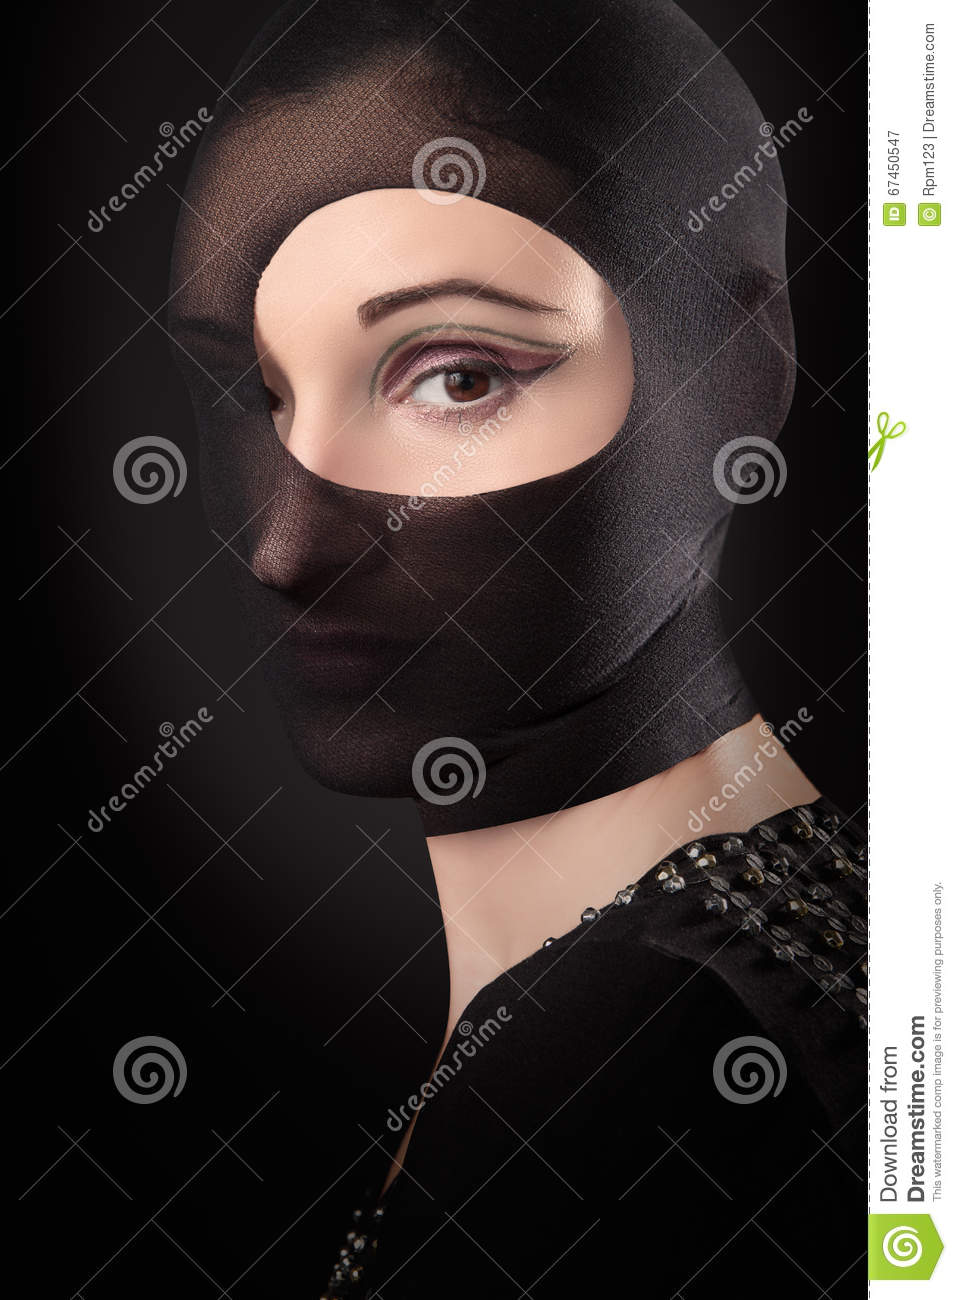 Woman in pantyhose mask